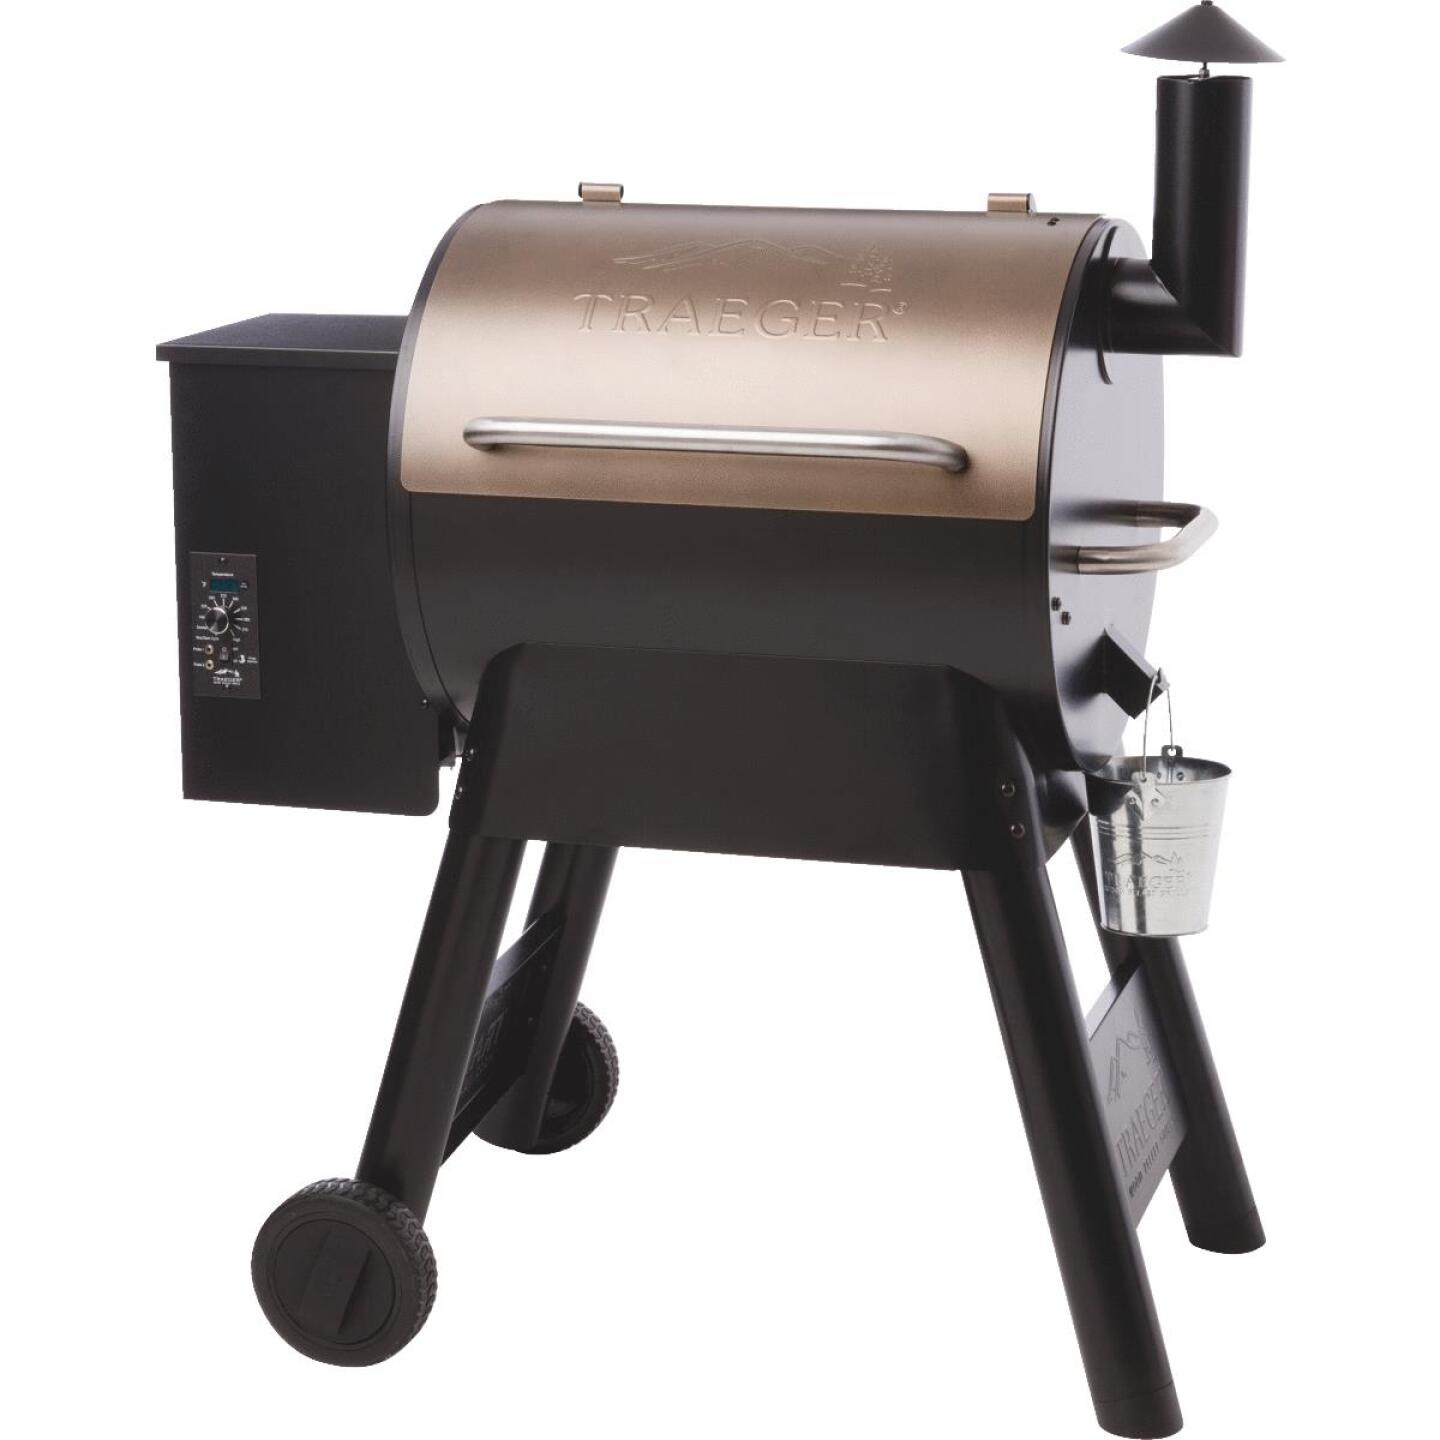 Traeger Pro Series 22 Bronze 20,000-BTU 572 Sq. In. Wood Pellet Grill Image 1